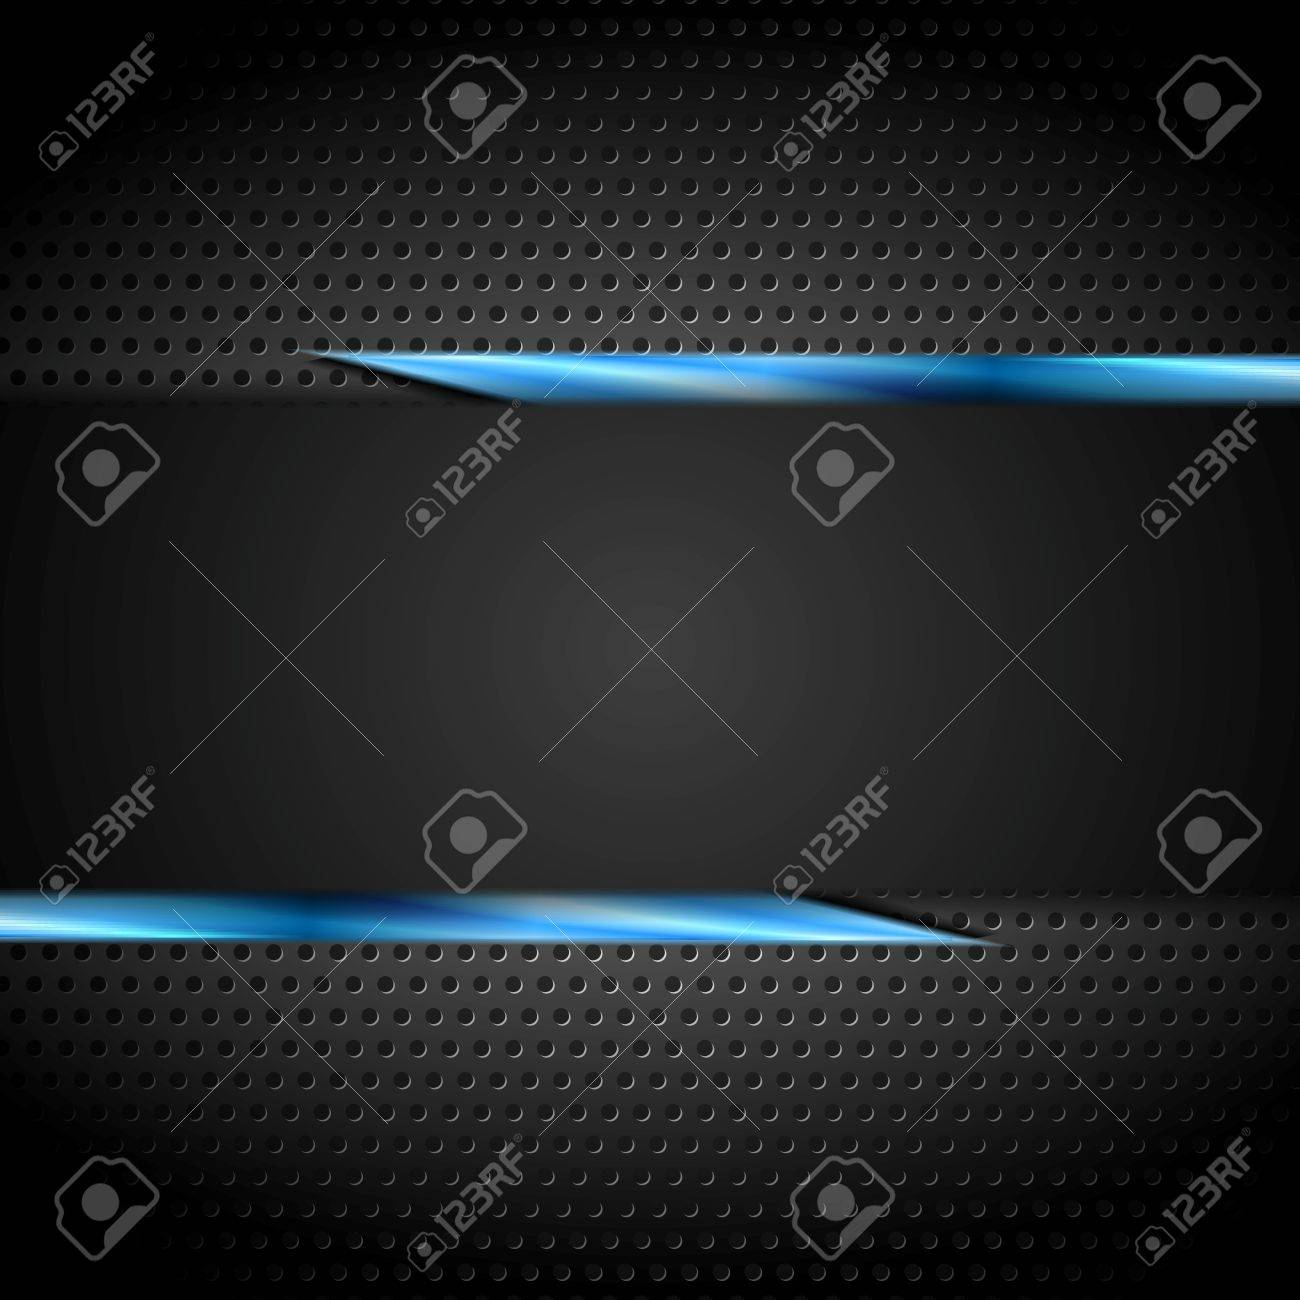 Tech black design with perforated metal texture. Vector background - 54351484